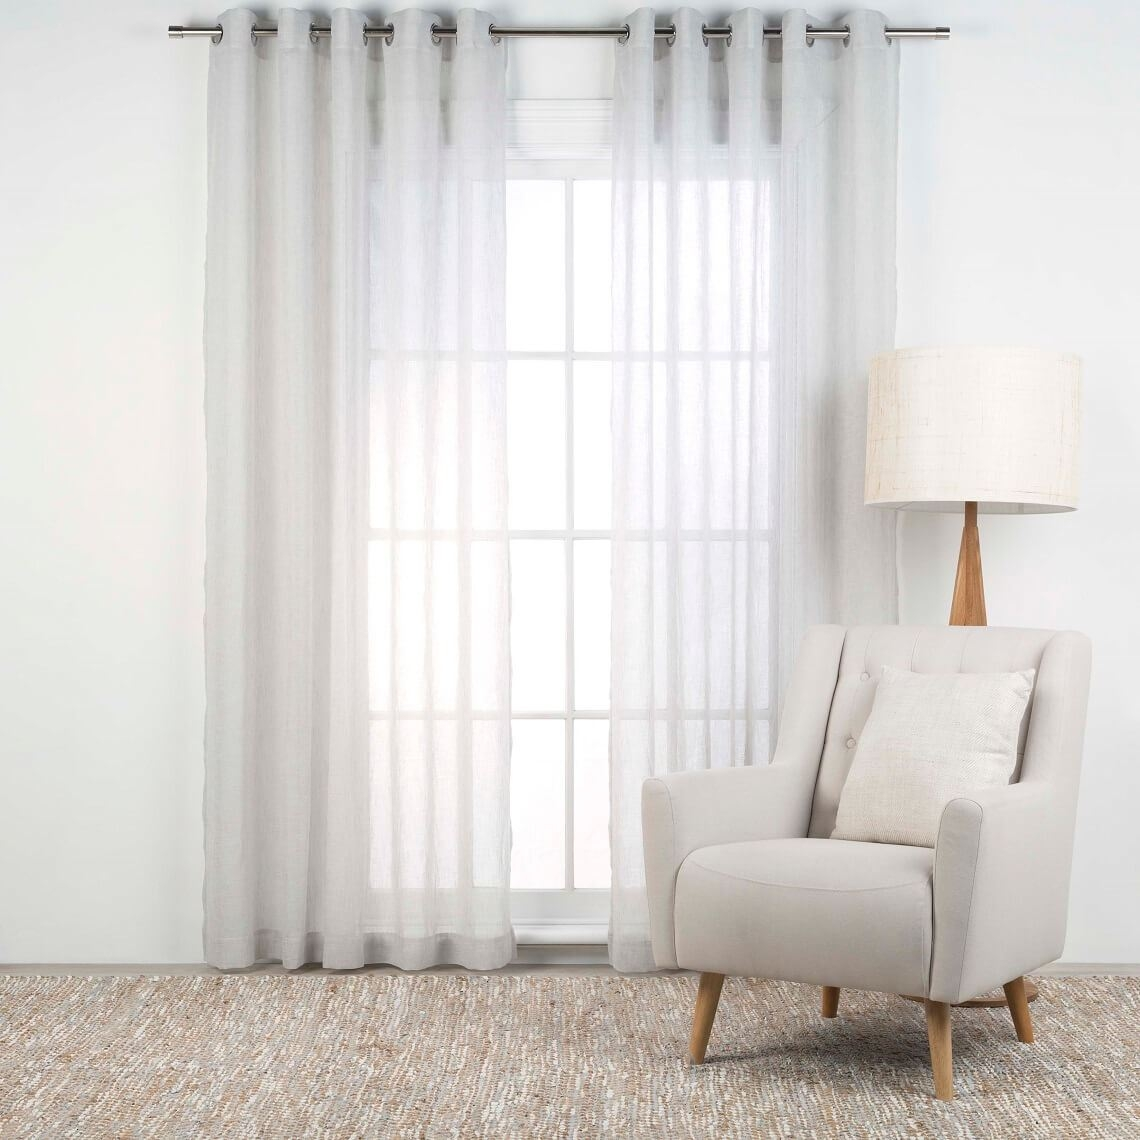 Ready Made Sheer Curtains Online 15 Collection Of Sheer Eyelet Curtains Curtain Ideas